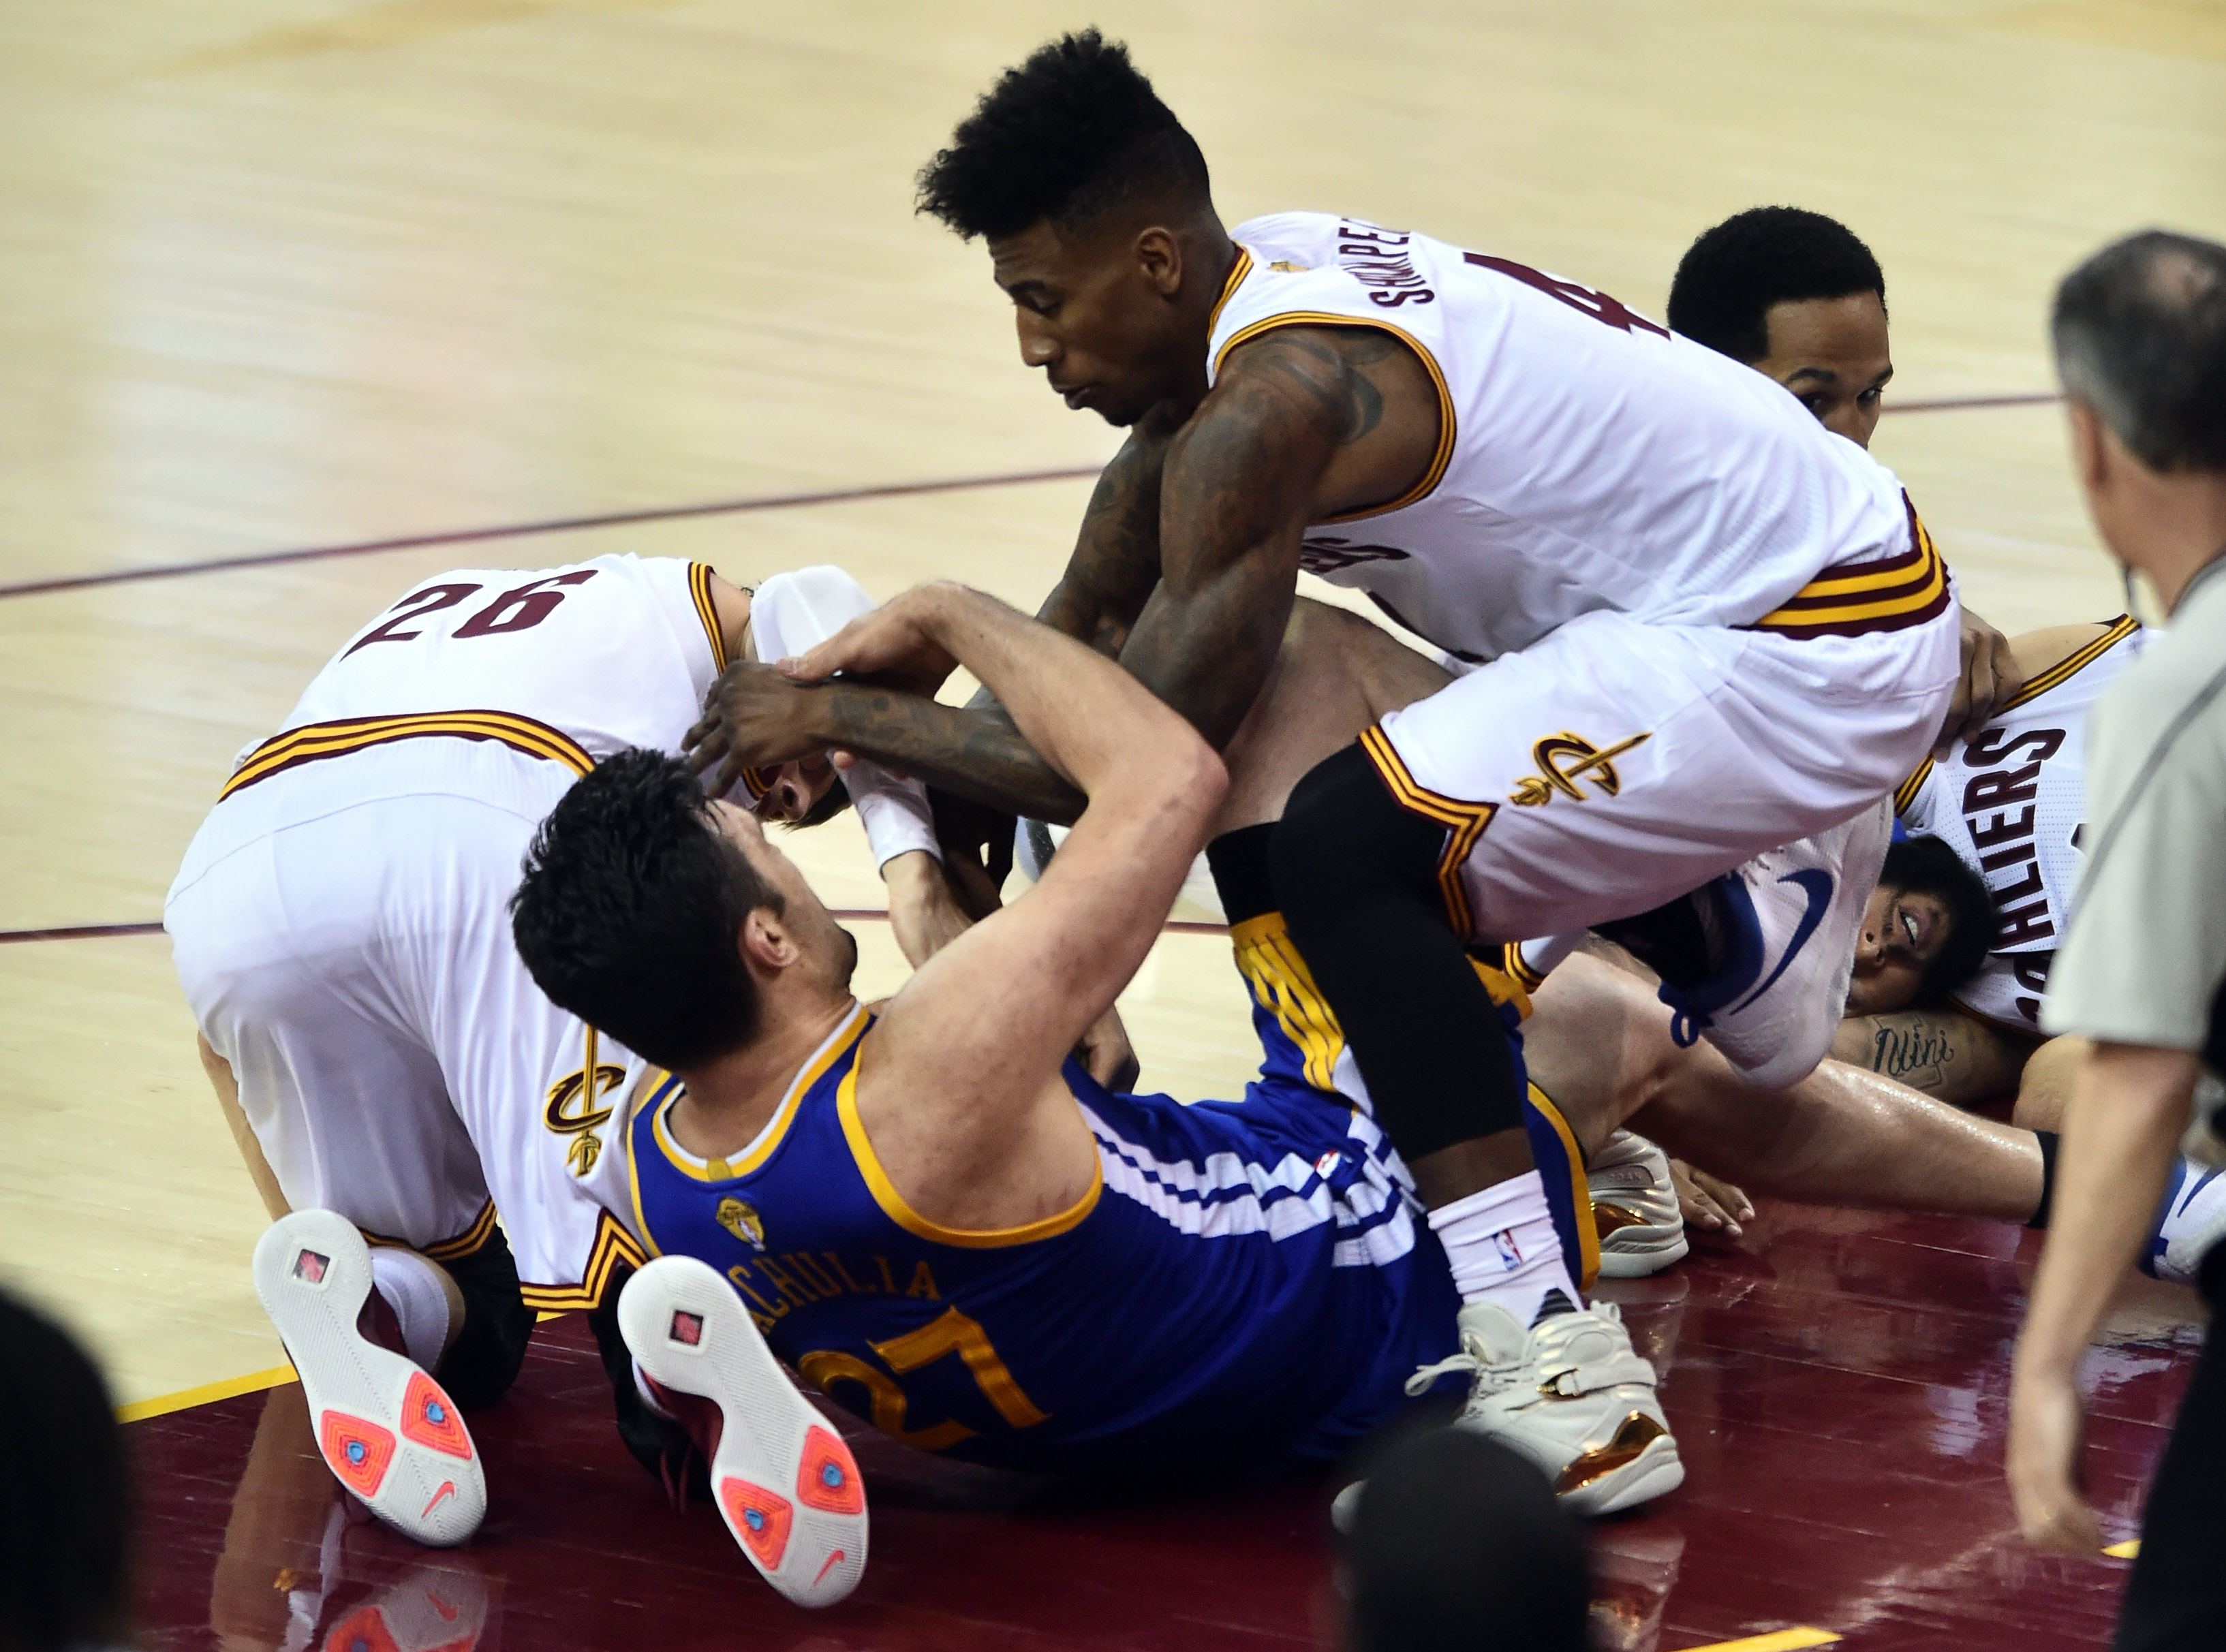 10100235-nba-finals-golden-state-warriors-at-cleveland-cavaliers